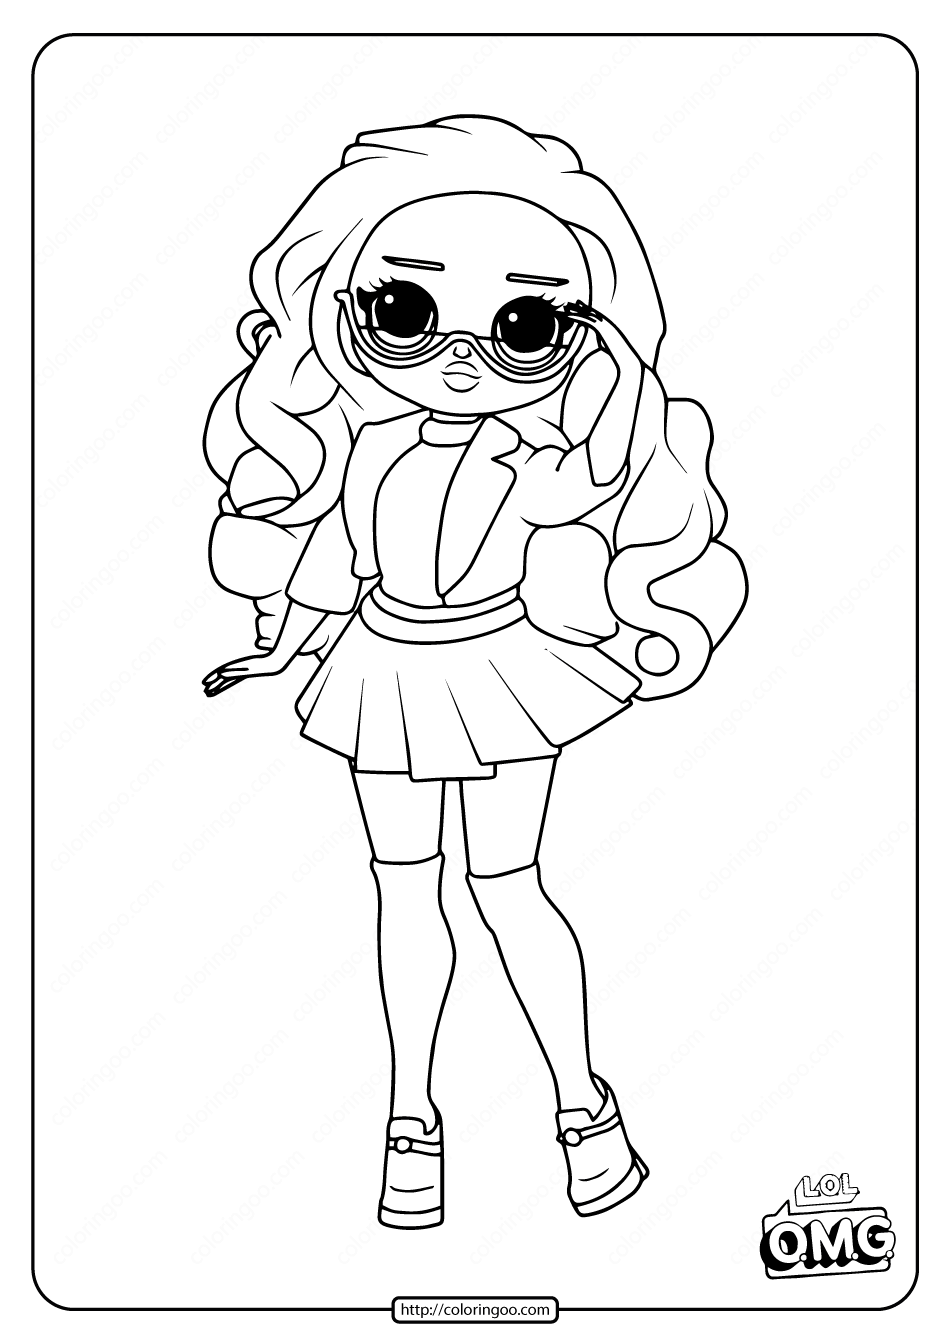 Lol Surprise Omg Class Prez Doll Coloring Page Cool Coloring Pages Tangled Coloring Pages Cute Coloring Pages